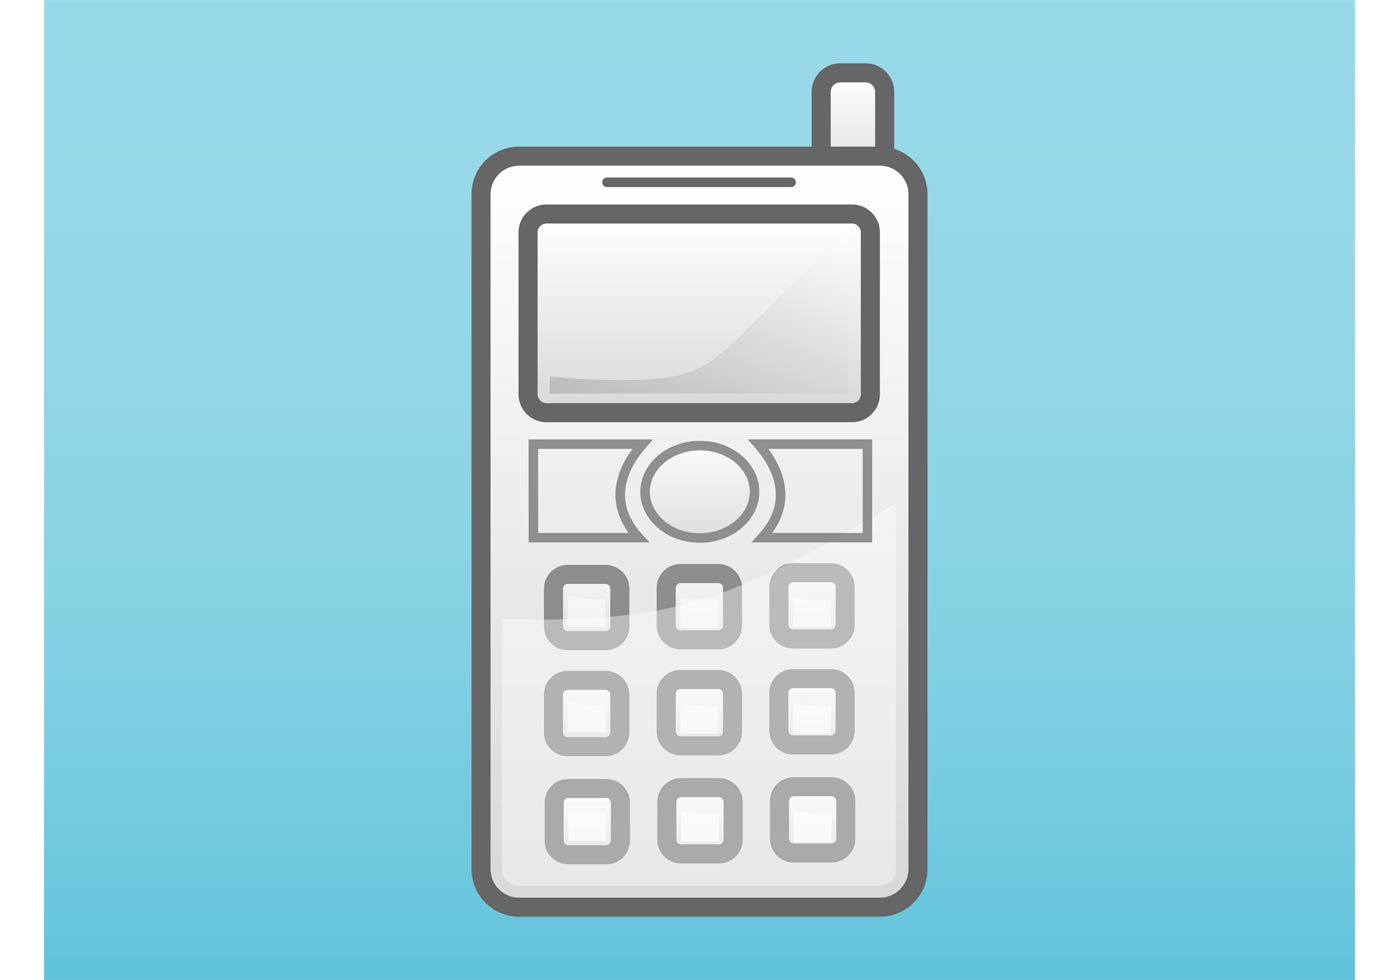 vector free download phone - photo #33